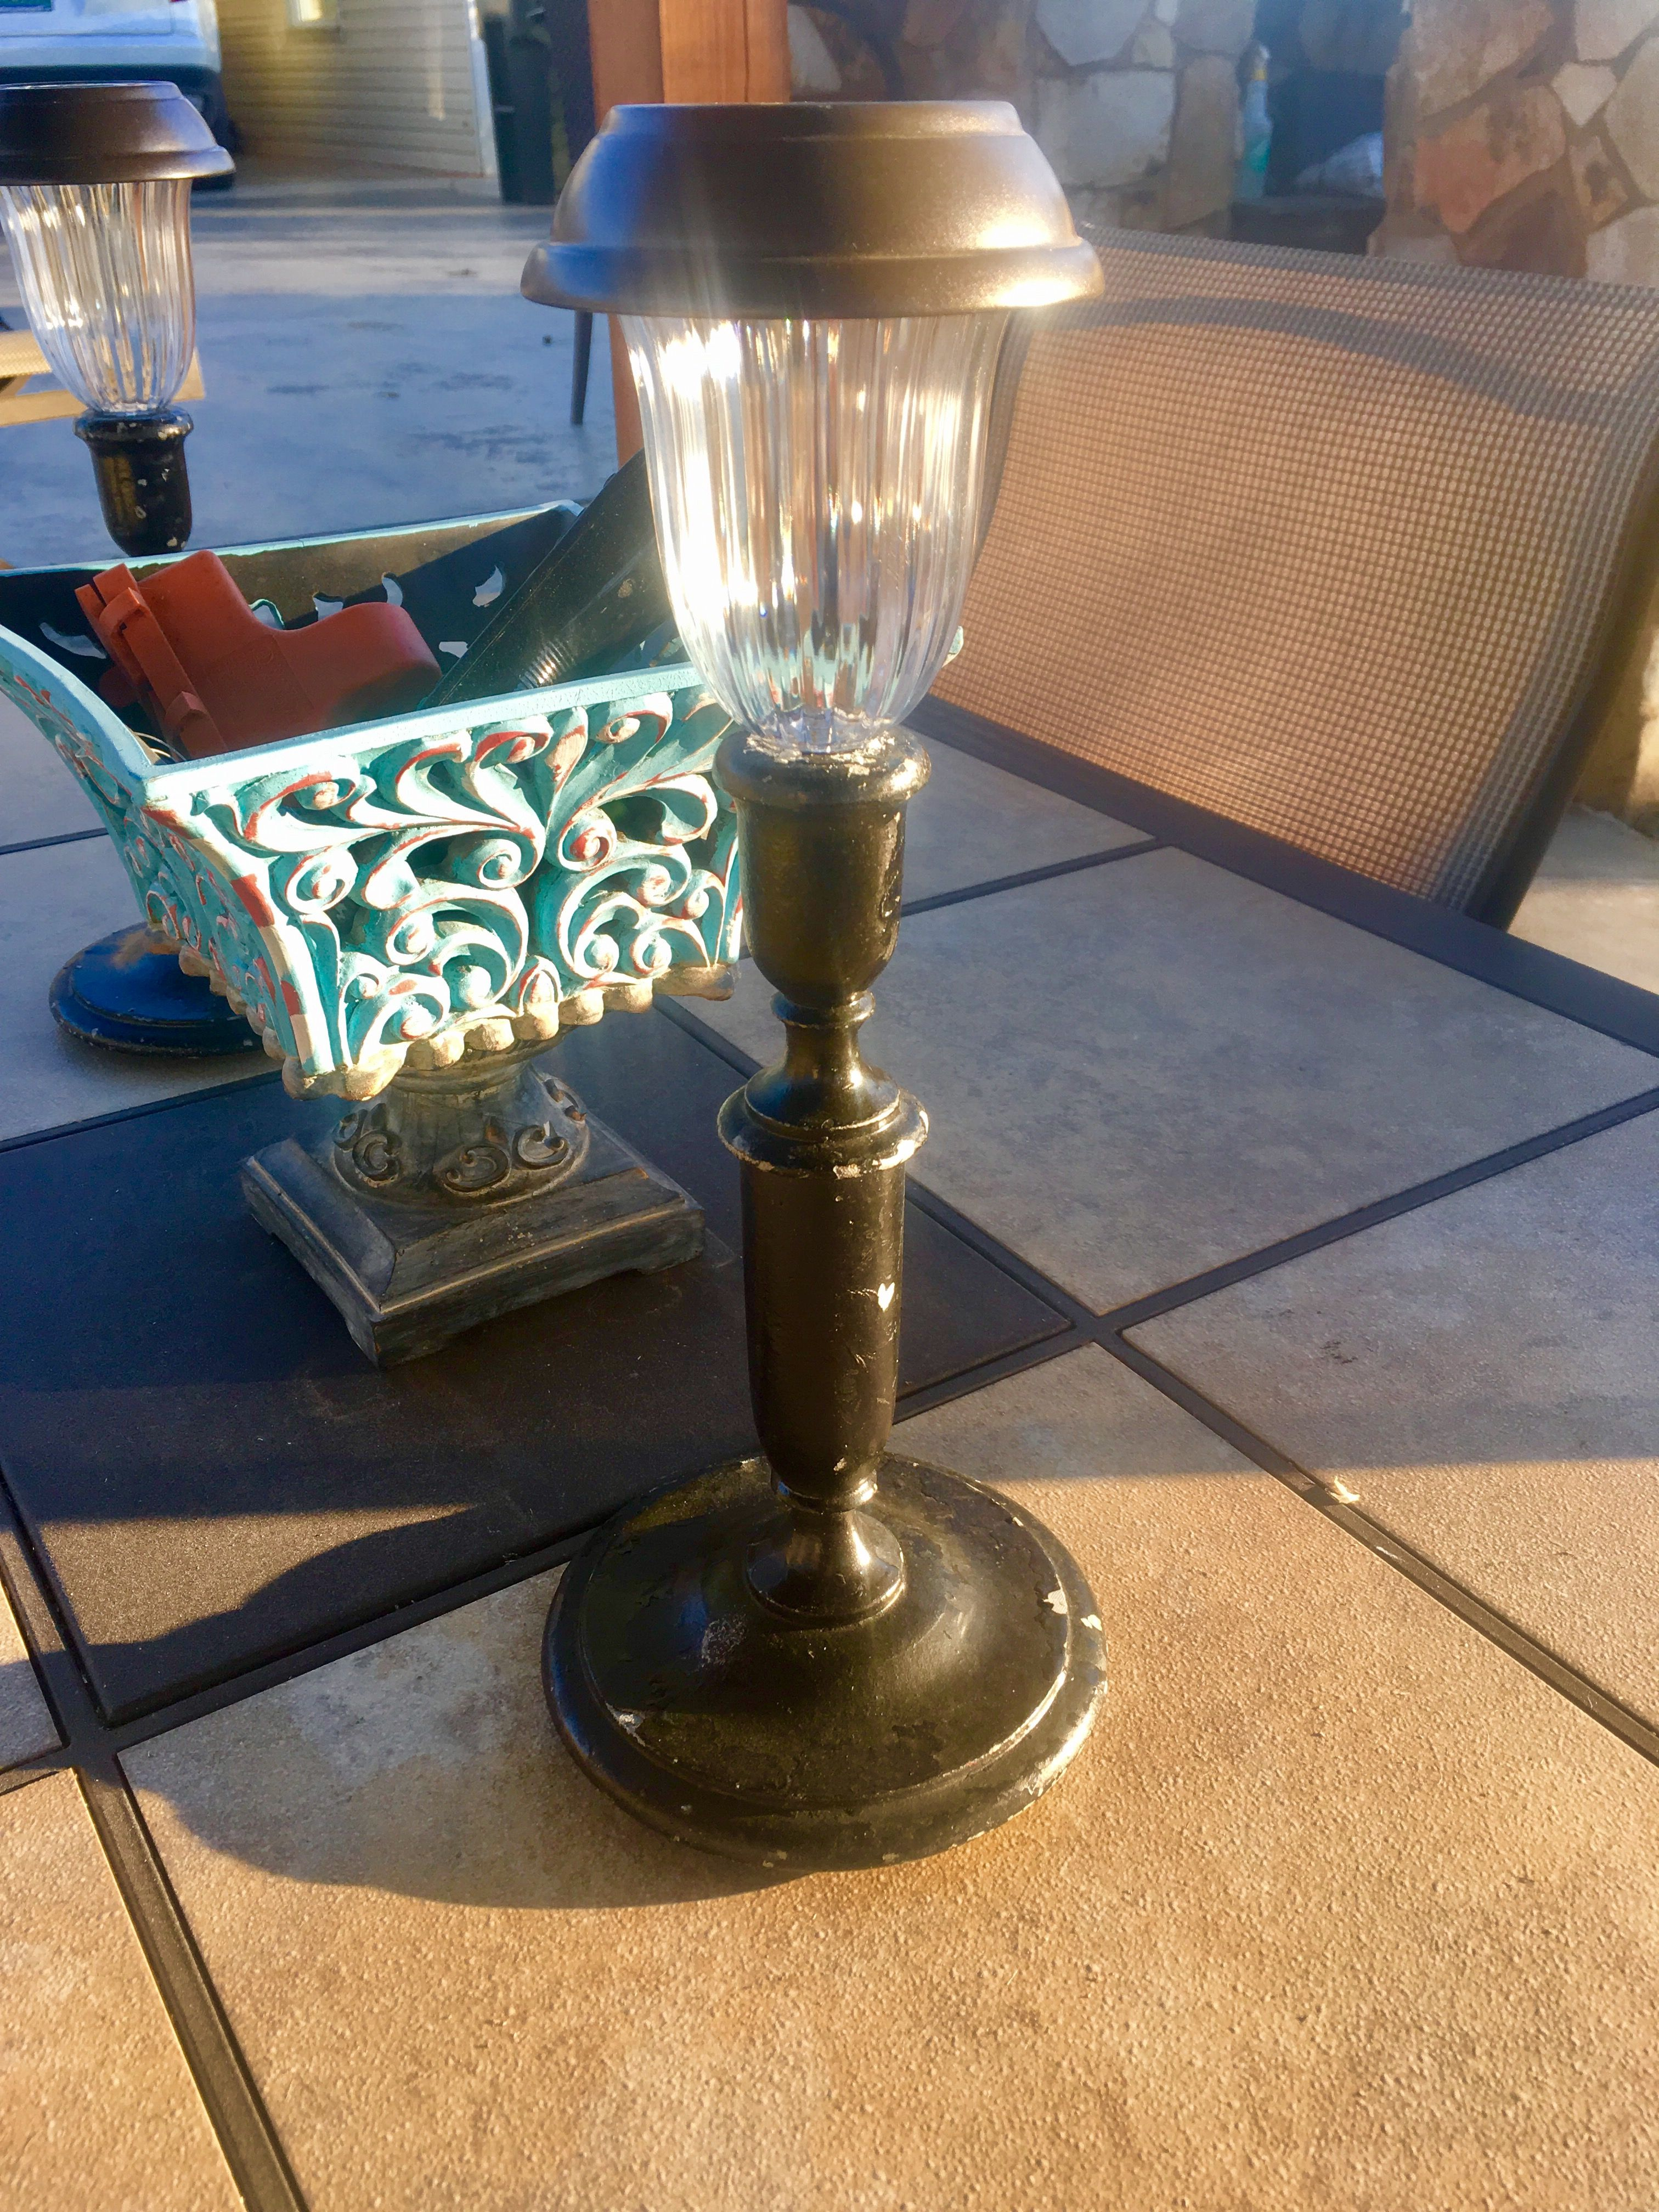 Solar Light On A Pewter Candle Stick For Table Lamp Lights Hy Campers